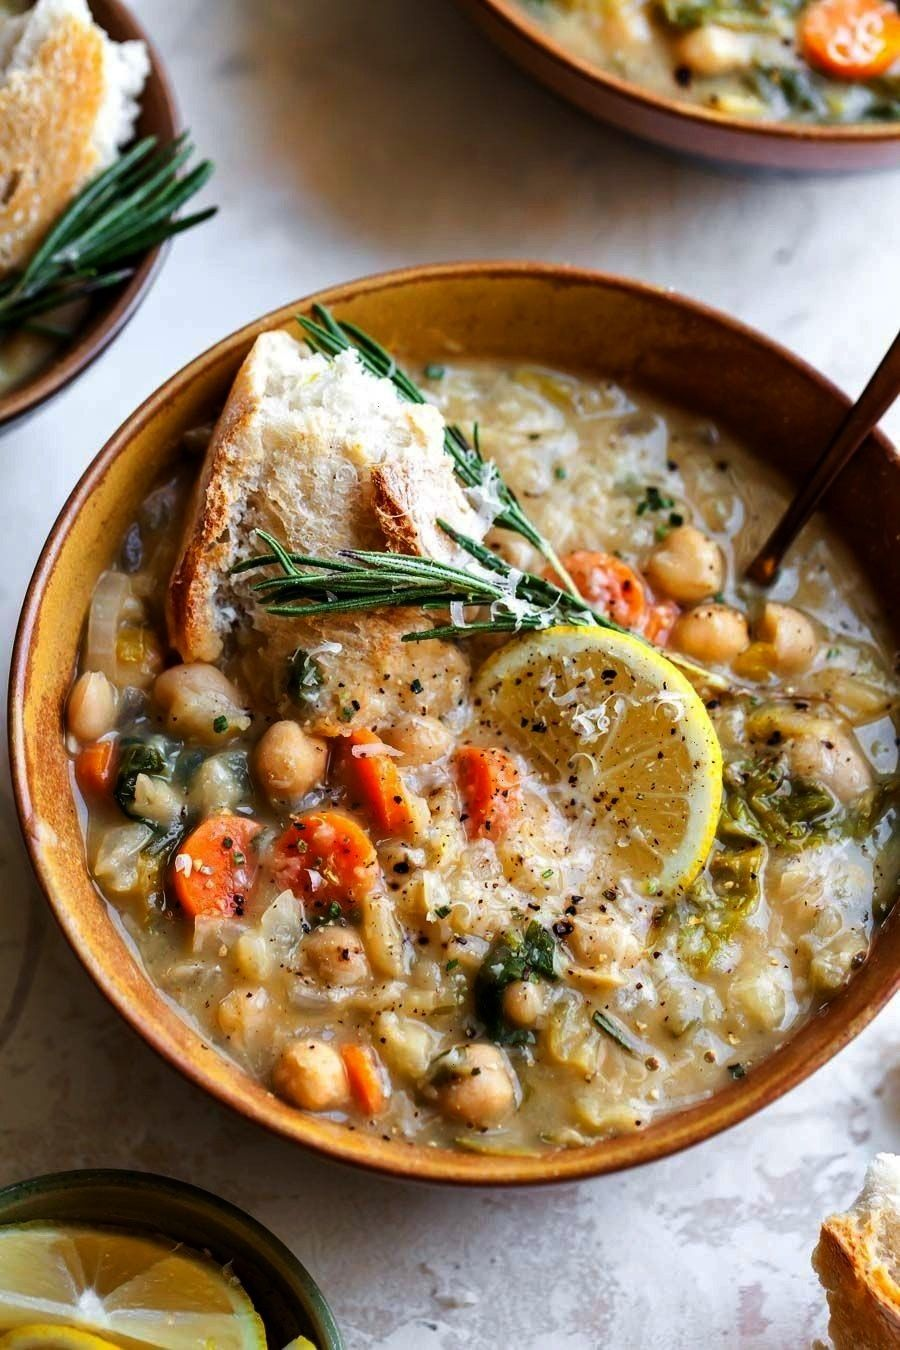 Bean and Lemon Soup is a vegetarian, fiber-filled meal ready in just 40 minutes. A one-pot meal per